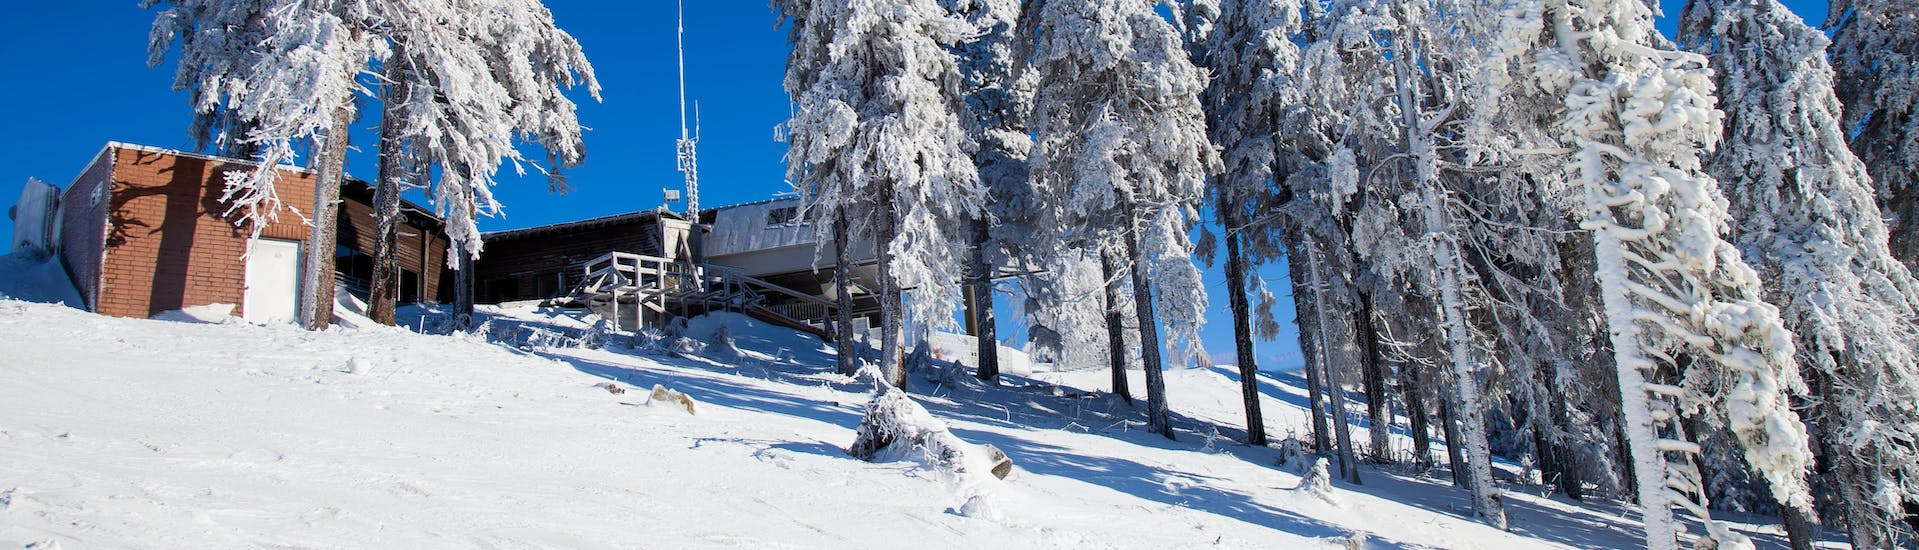 An image of the top station of the Wurmberg gondola in Braunlage, a popular ski resort where local ski schools offer ski lessons for visitors who are eager to learn to ski.